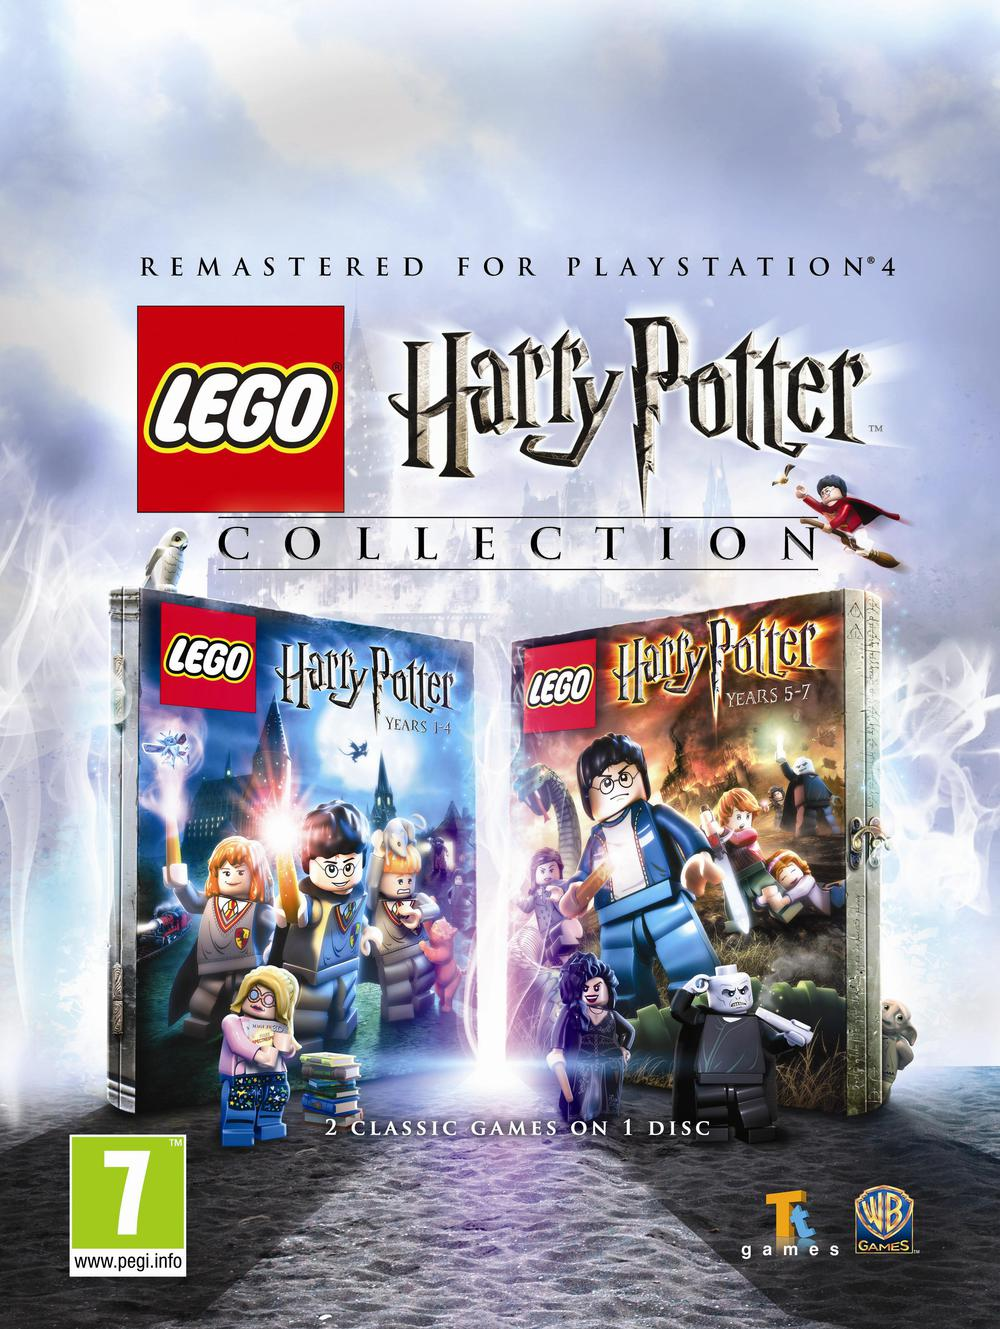 vamers-fyi-video-gaming-lego-harry-potter-returns-with-remastered-lego-collection-01